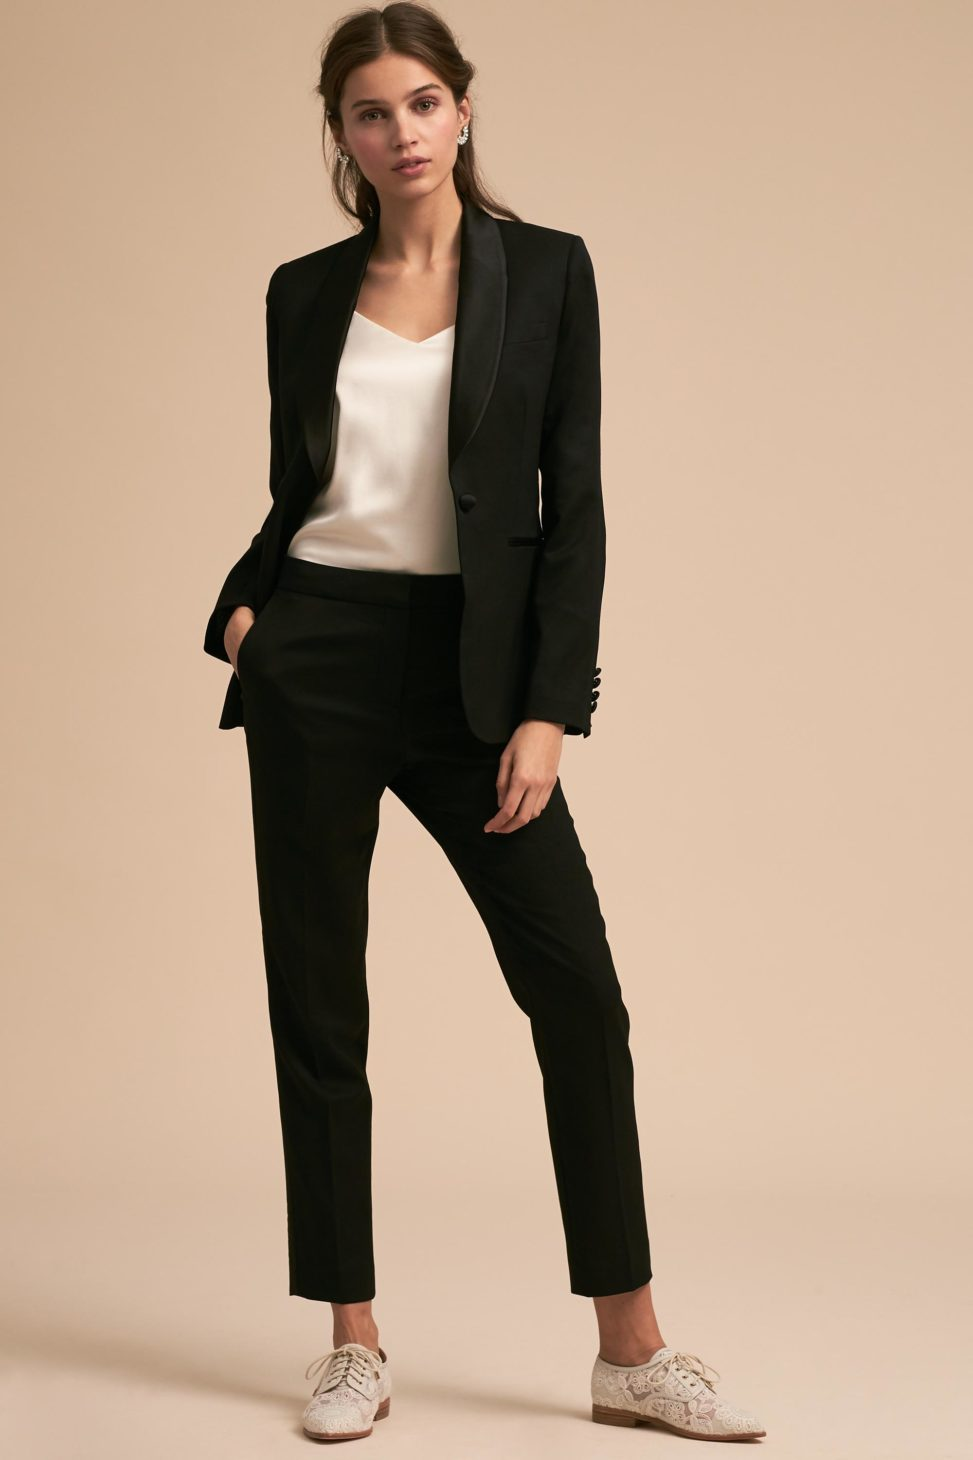 A woman stands, dressed in a black tuxedo jacket and black pants with white shoes.